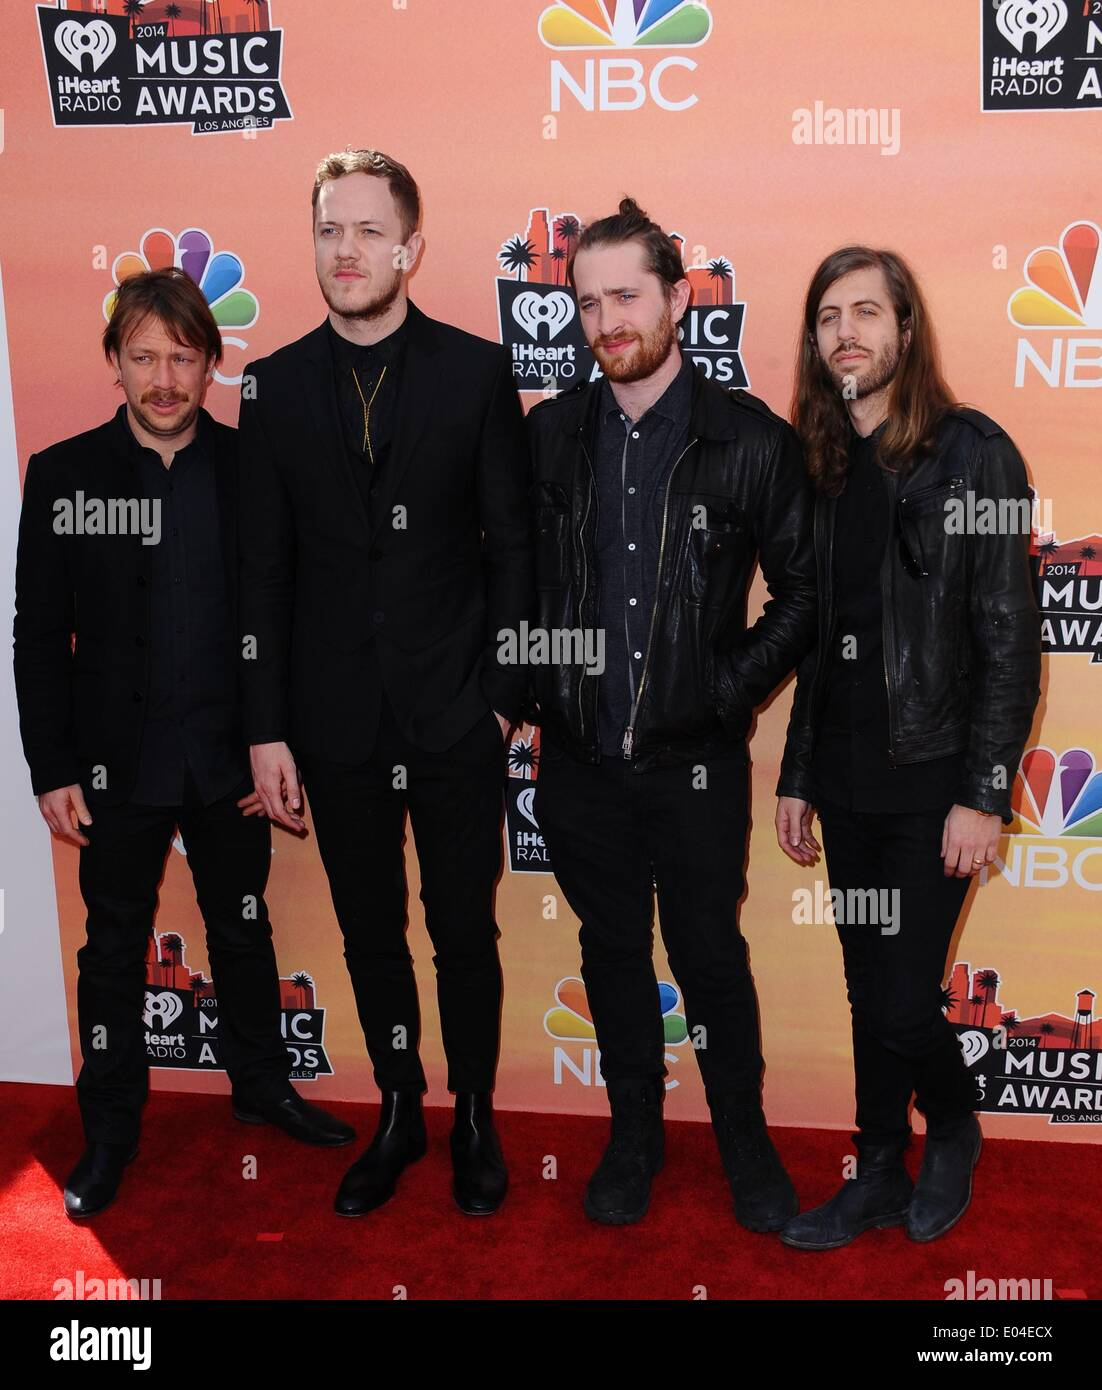 Los Angeles, CA, USA. 1st May, 2014. Imagine Dragons at arrivals for iHeartRadio Music Awards 2014, The Shrine Auditorium, Los Angeles, CA May 1, 2014. Credit:  Dee Cercone/Everett Collection/Alamy Live News - Stock Image